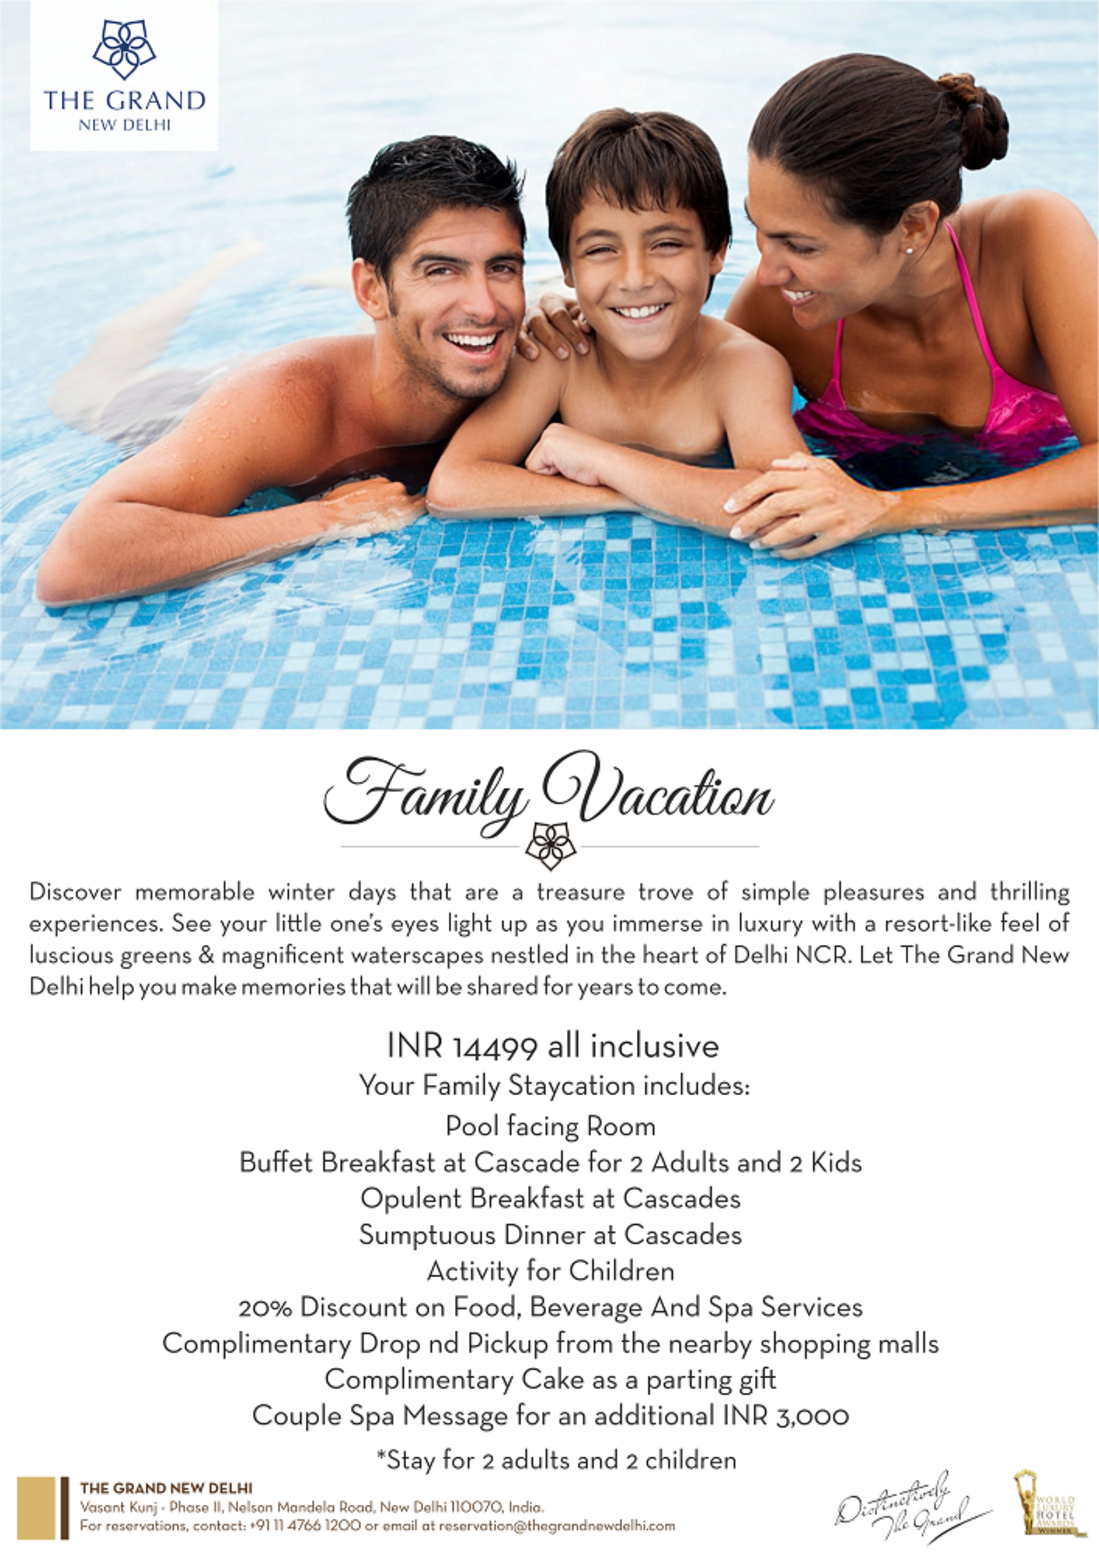 Family Staycation at Hotel The Grand New Delhi